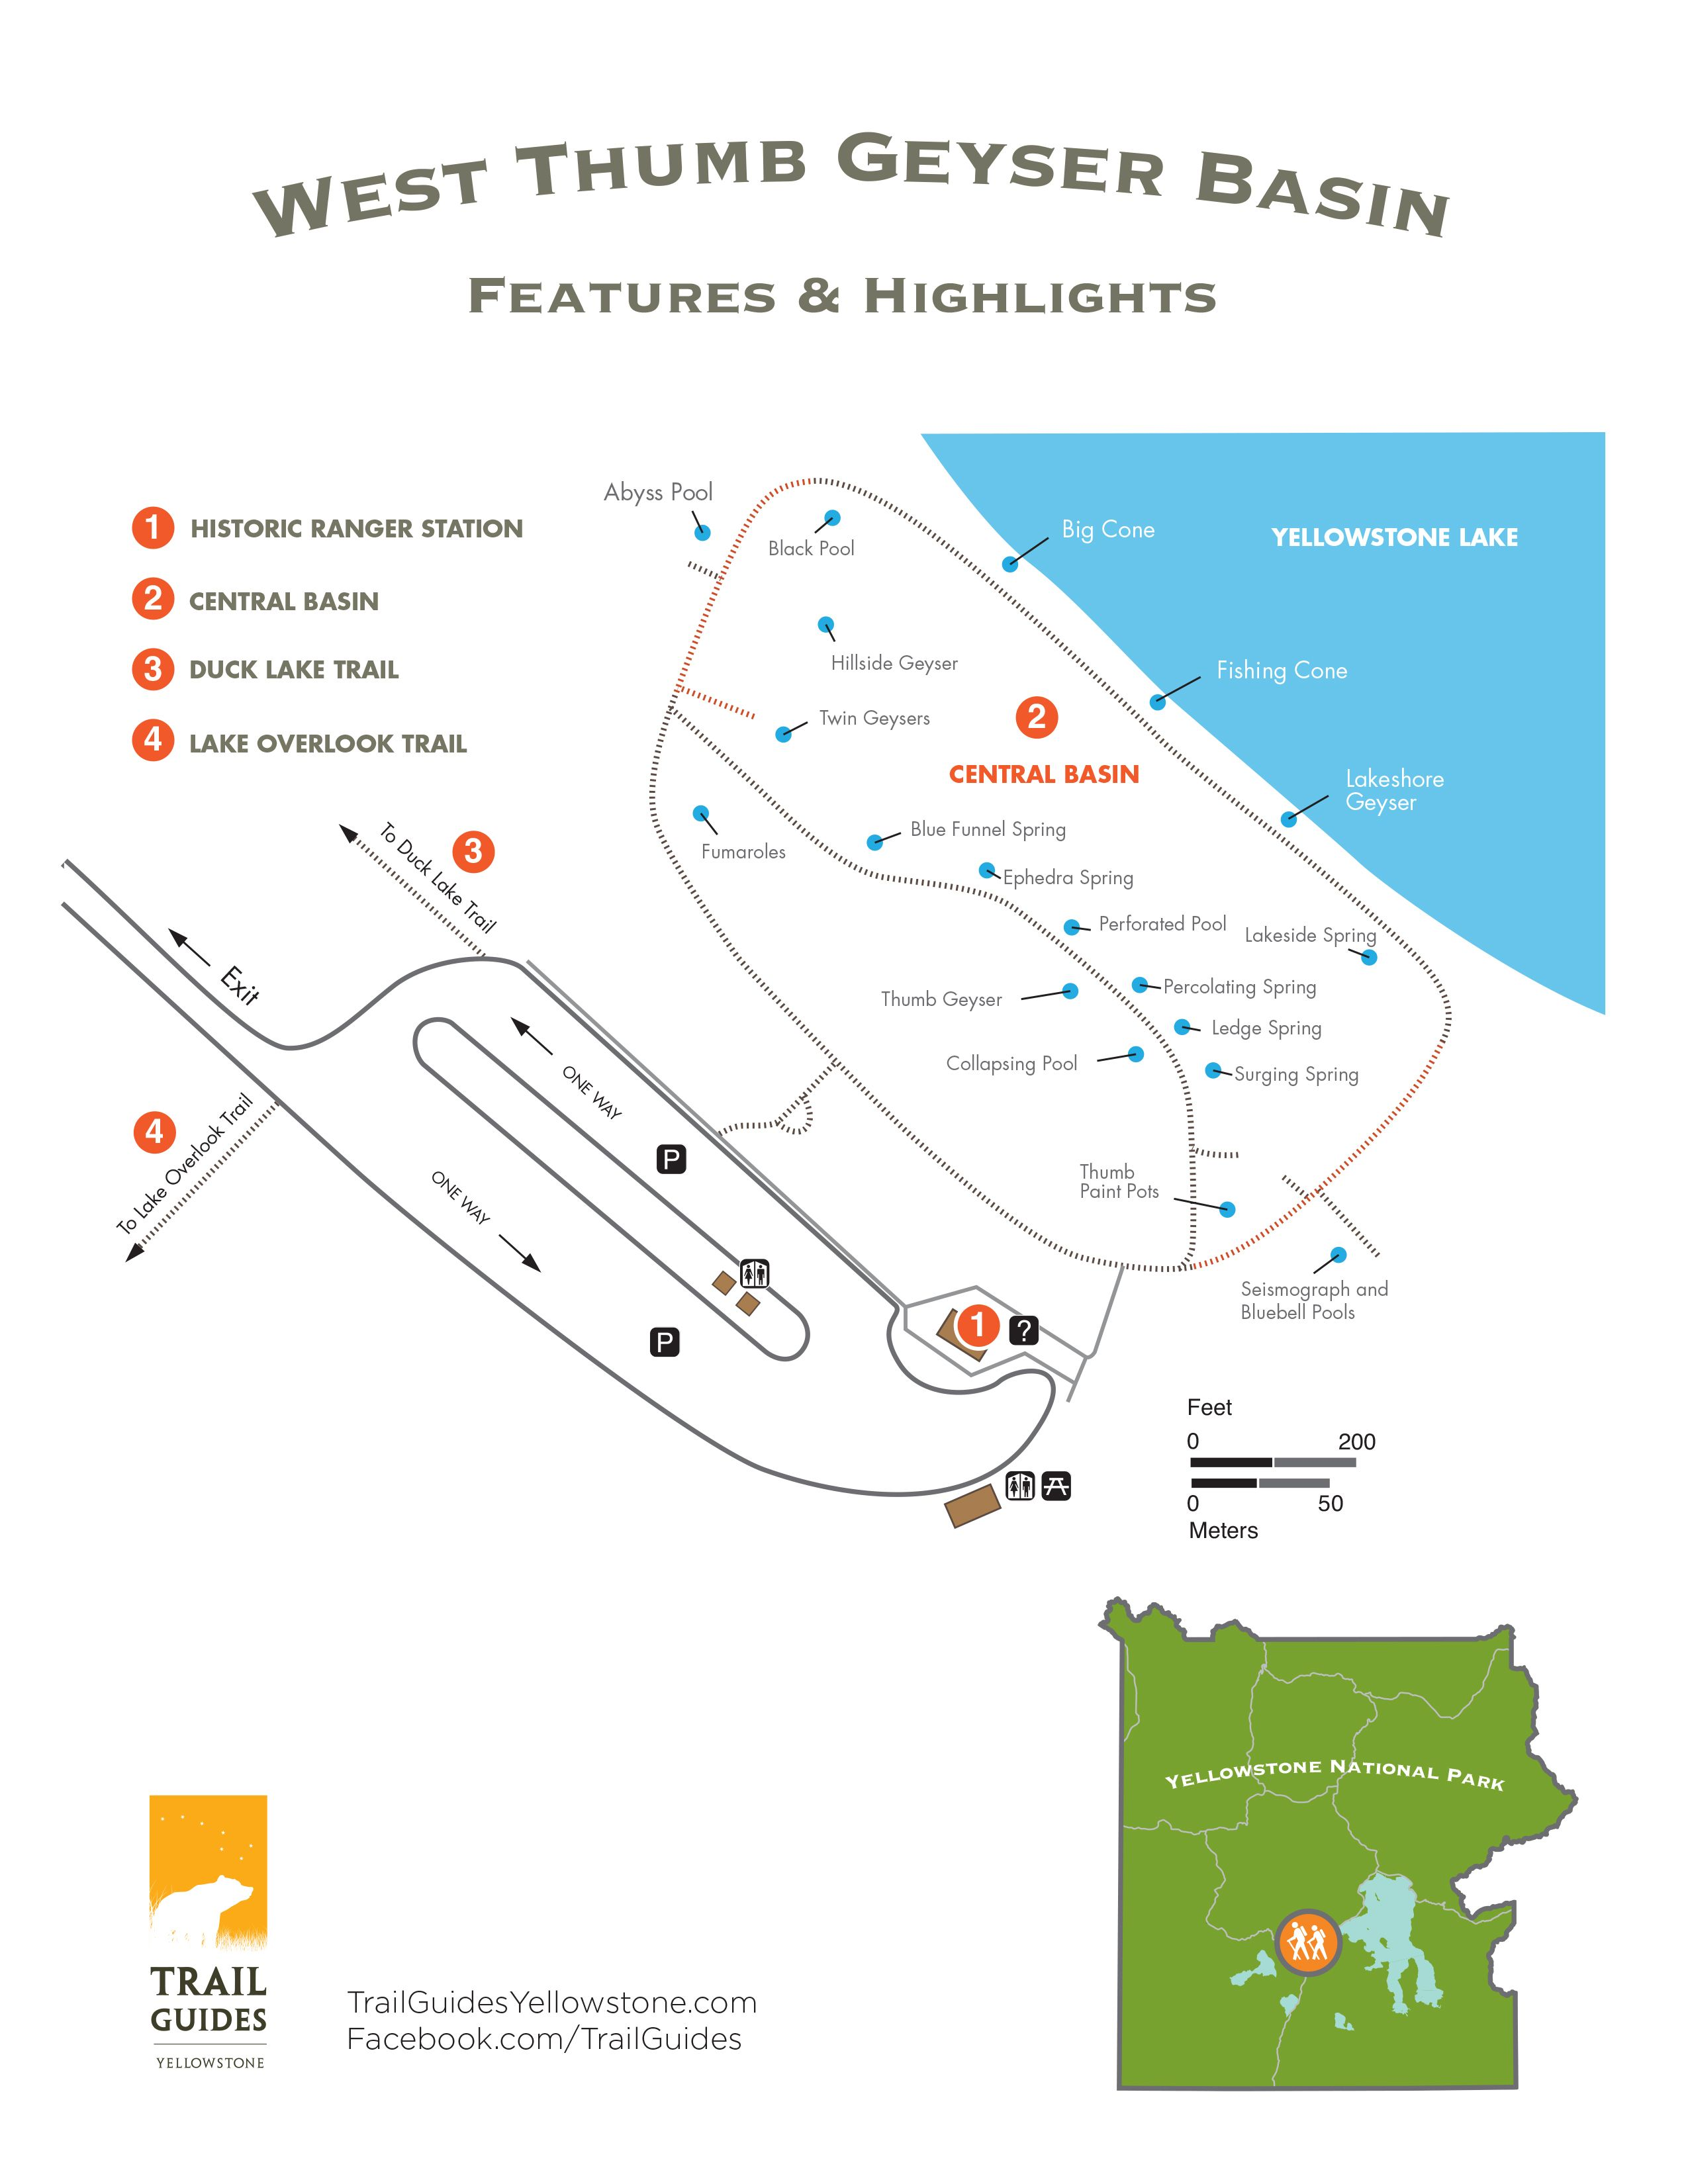 West Thumb Geyser Basin trail map | Family road trips ... on map of grand prismatic spring, map of yellowstone geysers, map of mud volcano, map of firehole canyon drive, map of mystic falls, map of yellowstone national park, map of old faithful area, map of yellowstone river,